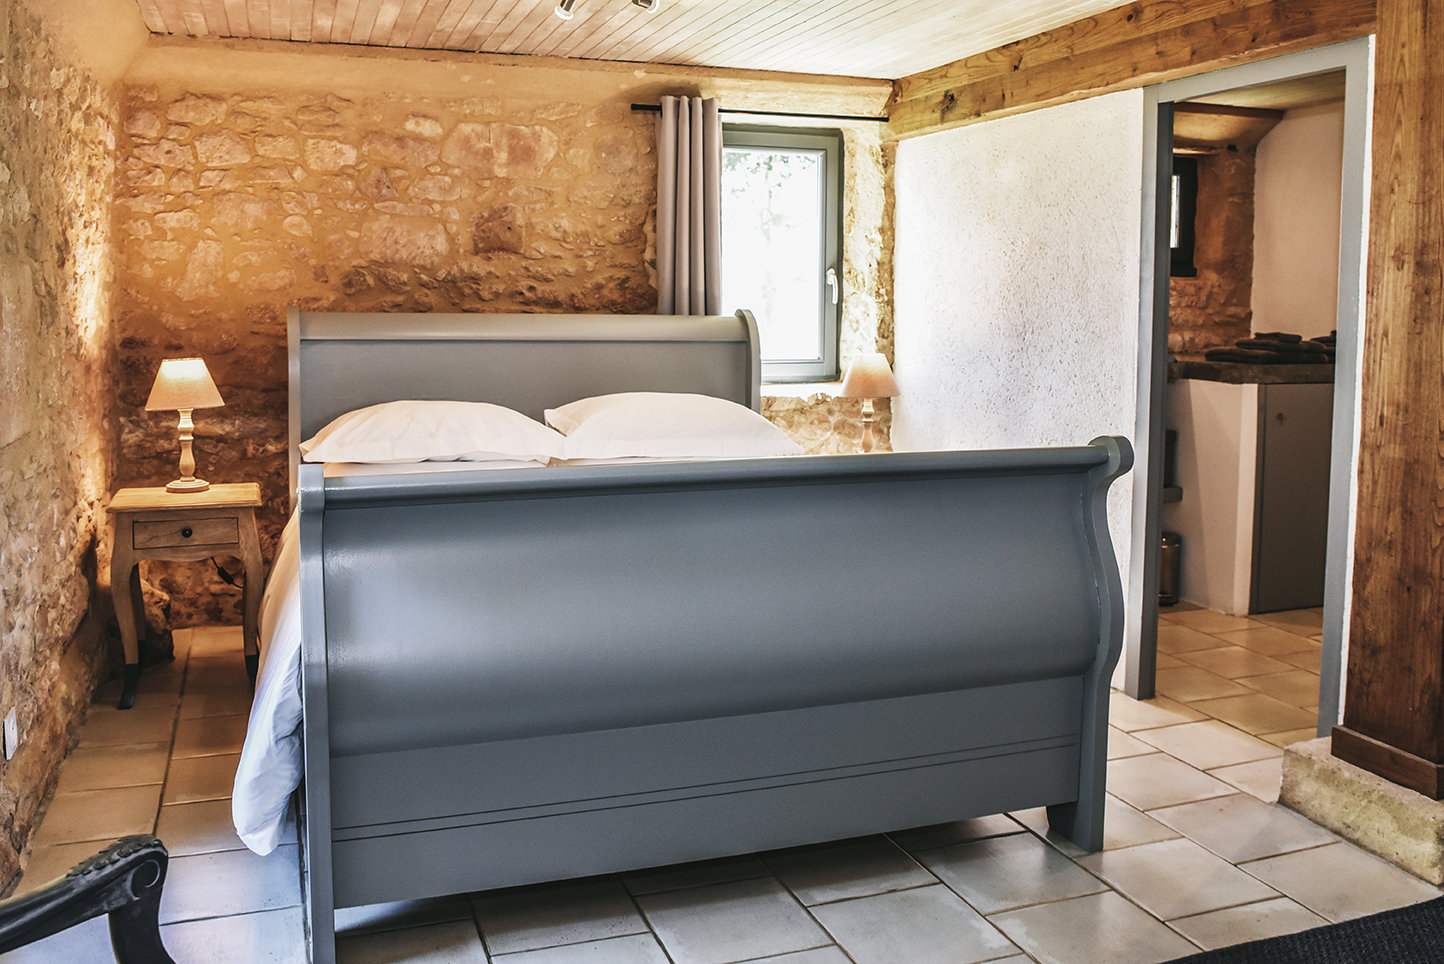 A double bed in a bedroom with a door leading to an en suite bathroom in Le Mazet, a holiday cottage in the Périgord